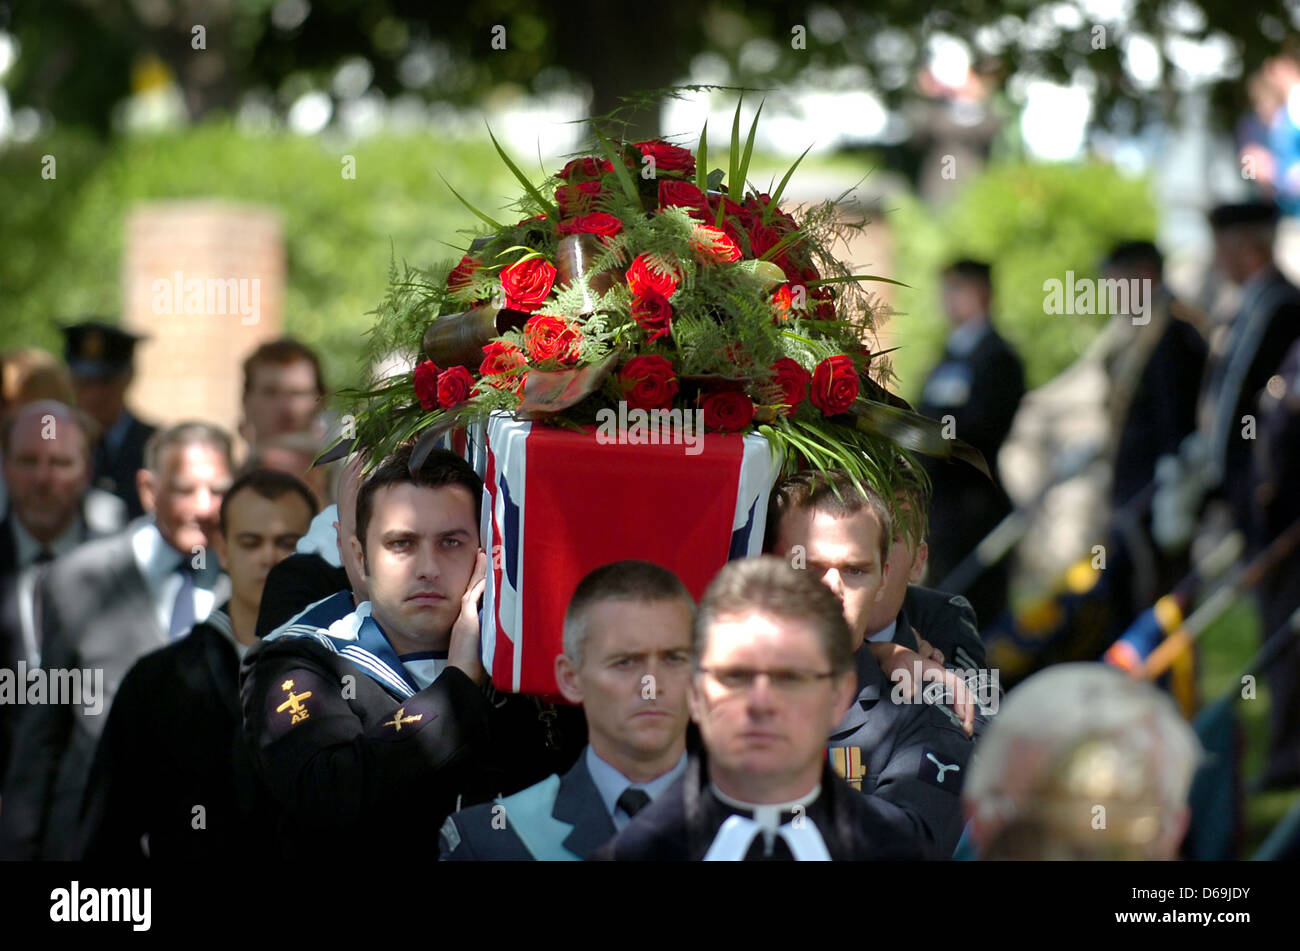 The Coffin Is Carried By The Pall Bearers For The Funeral Of Henry